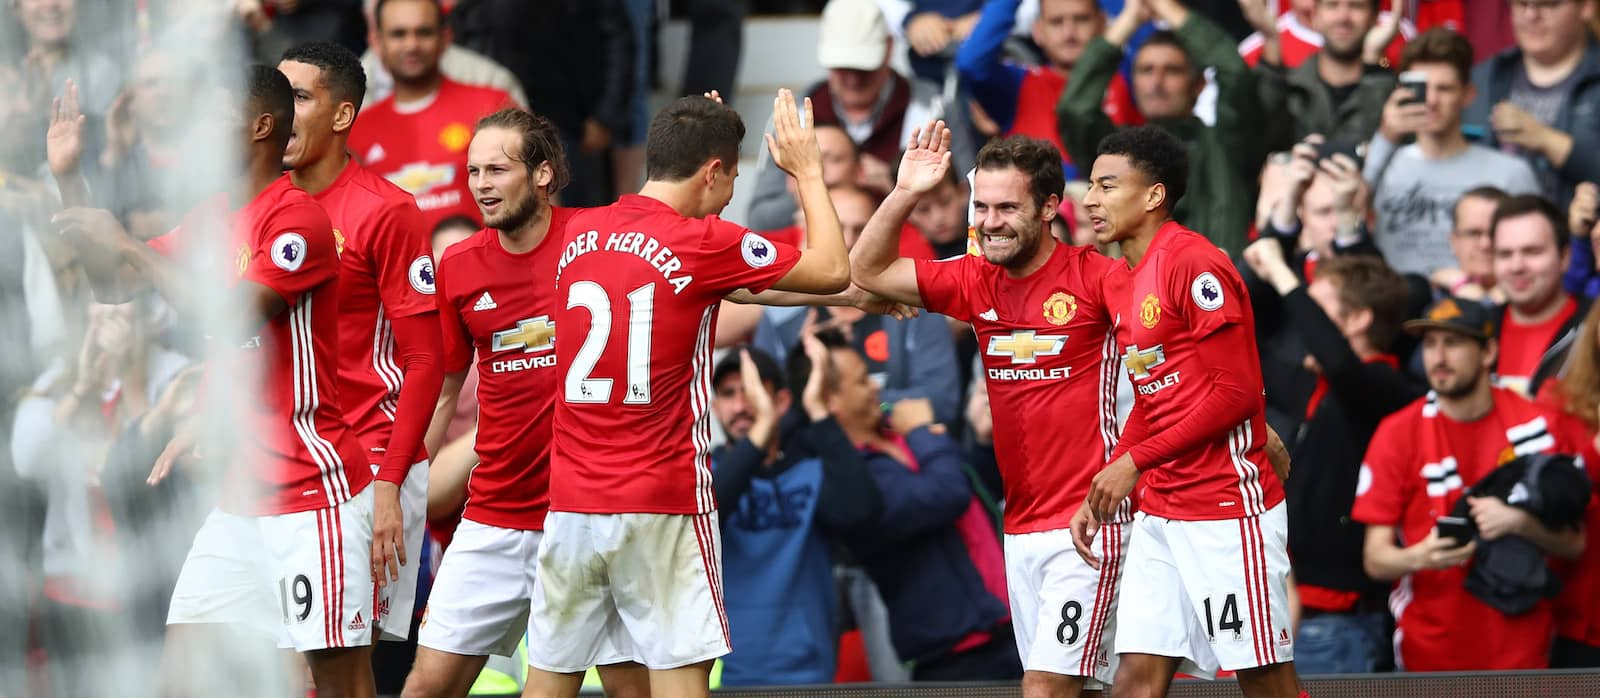 Manchester United set to hand one year extensions to Juan Mata, Daley Blind, Ashley Young and Ander Herrera – report